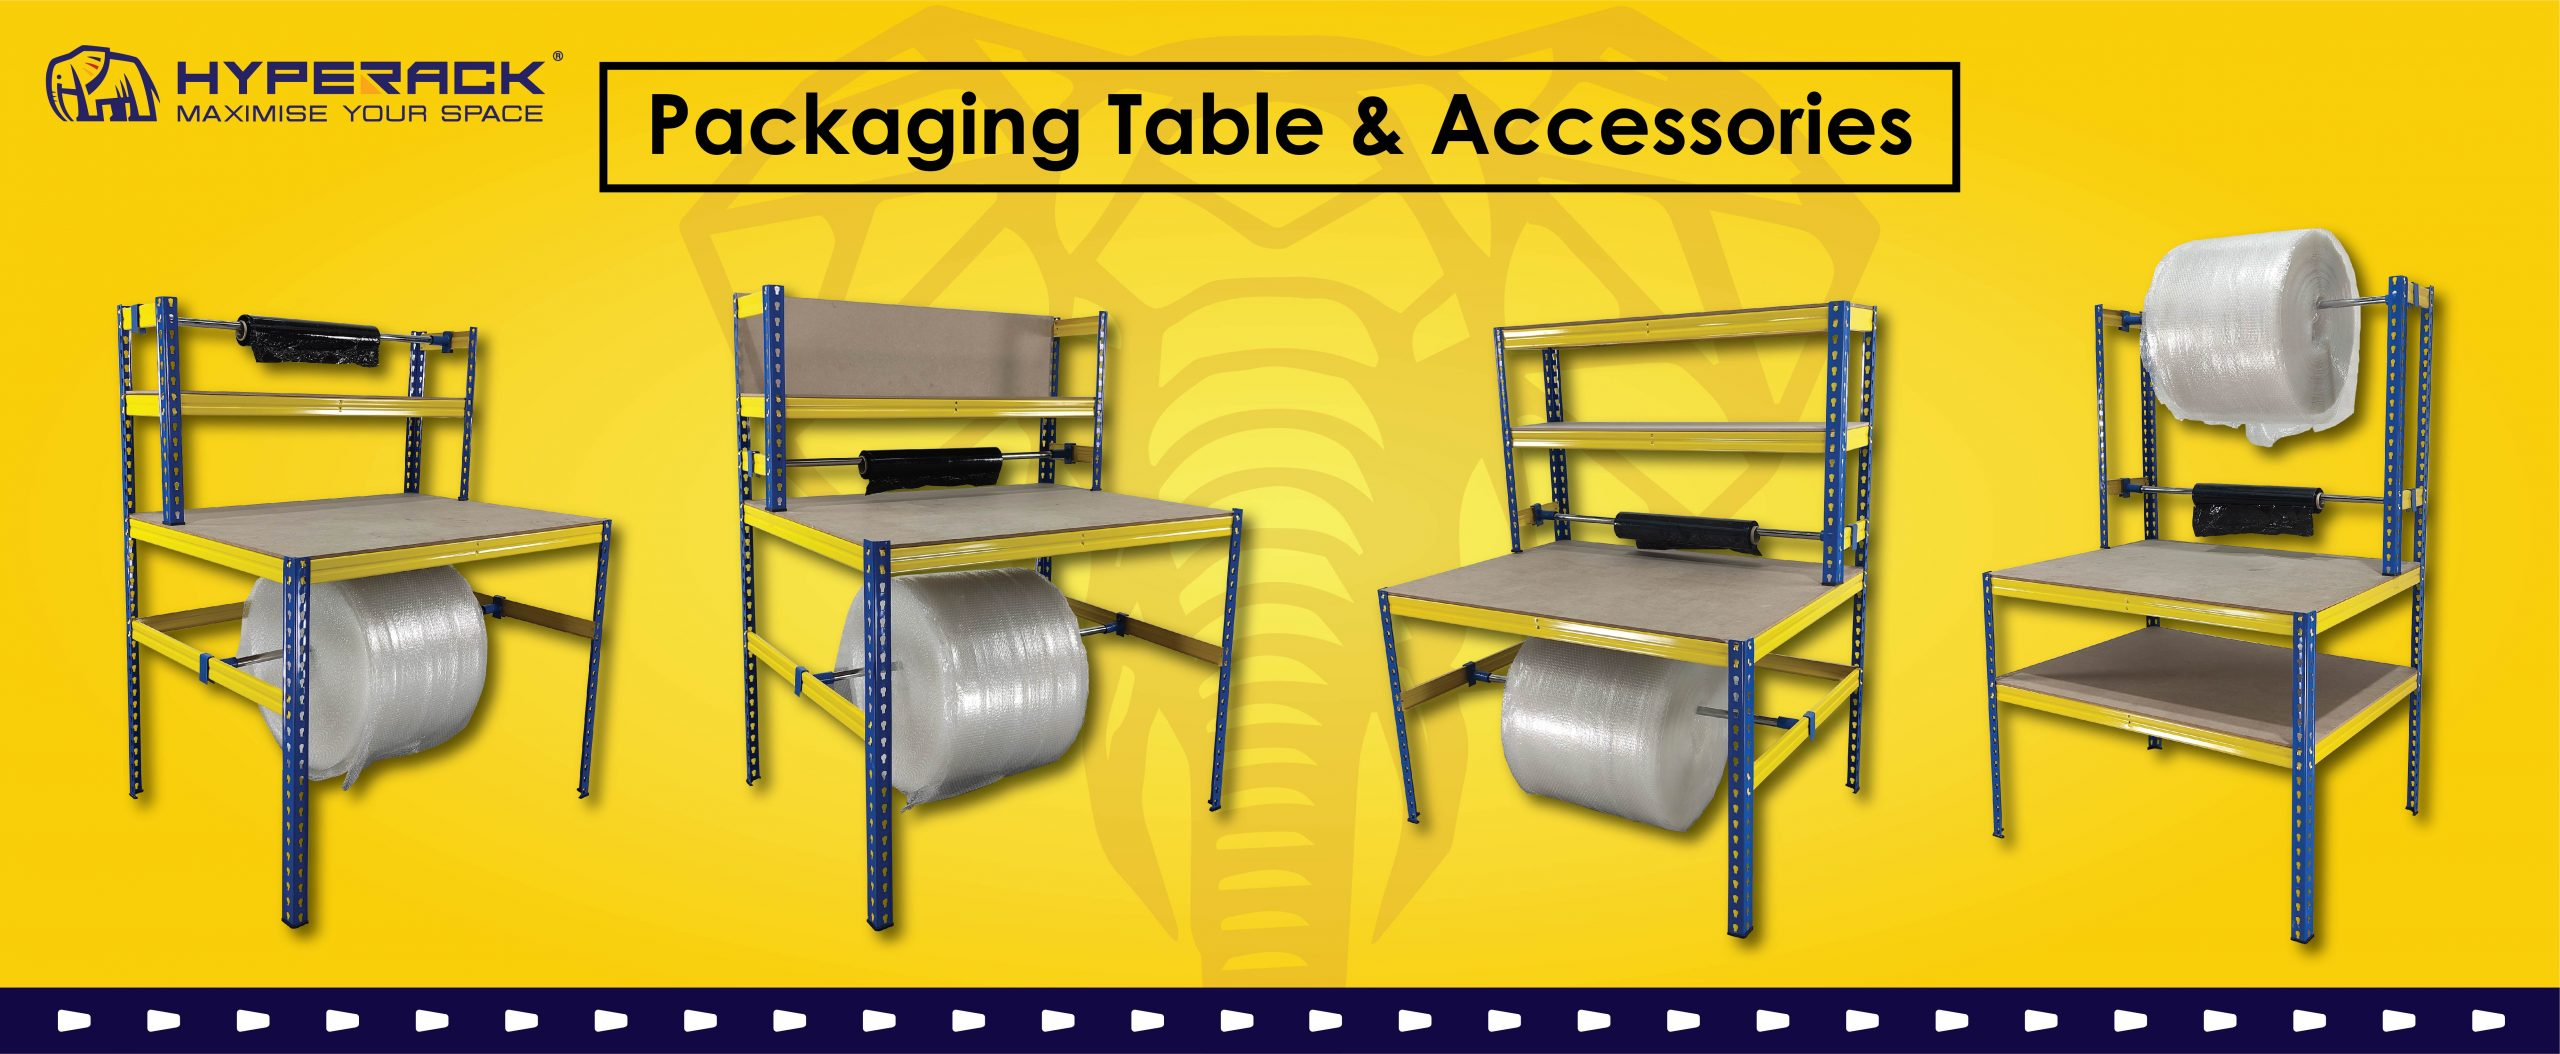 Packaging Table & Accessories